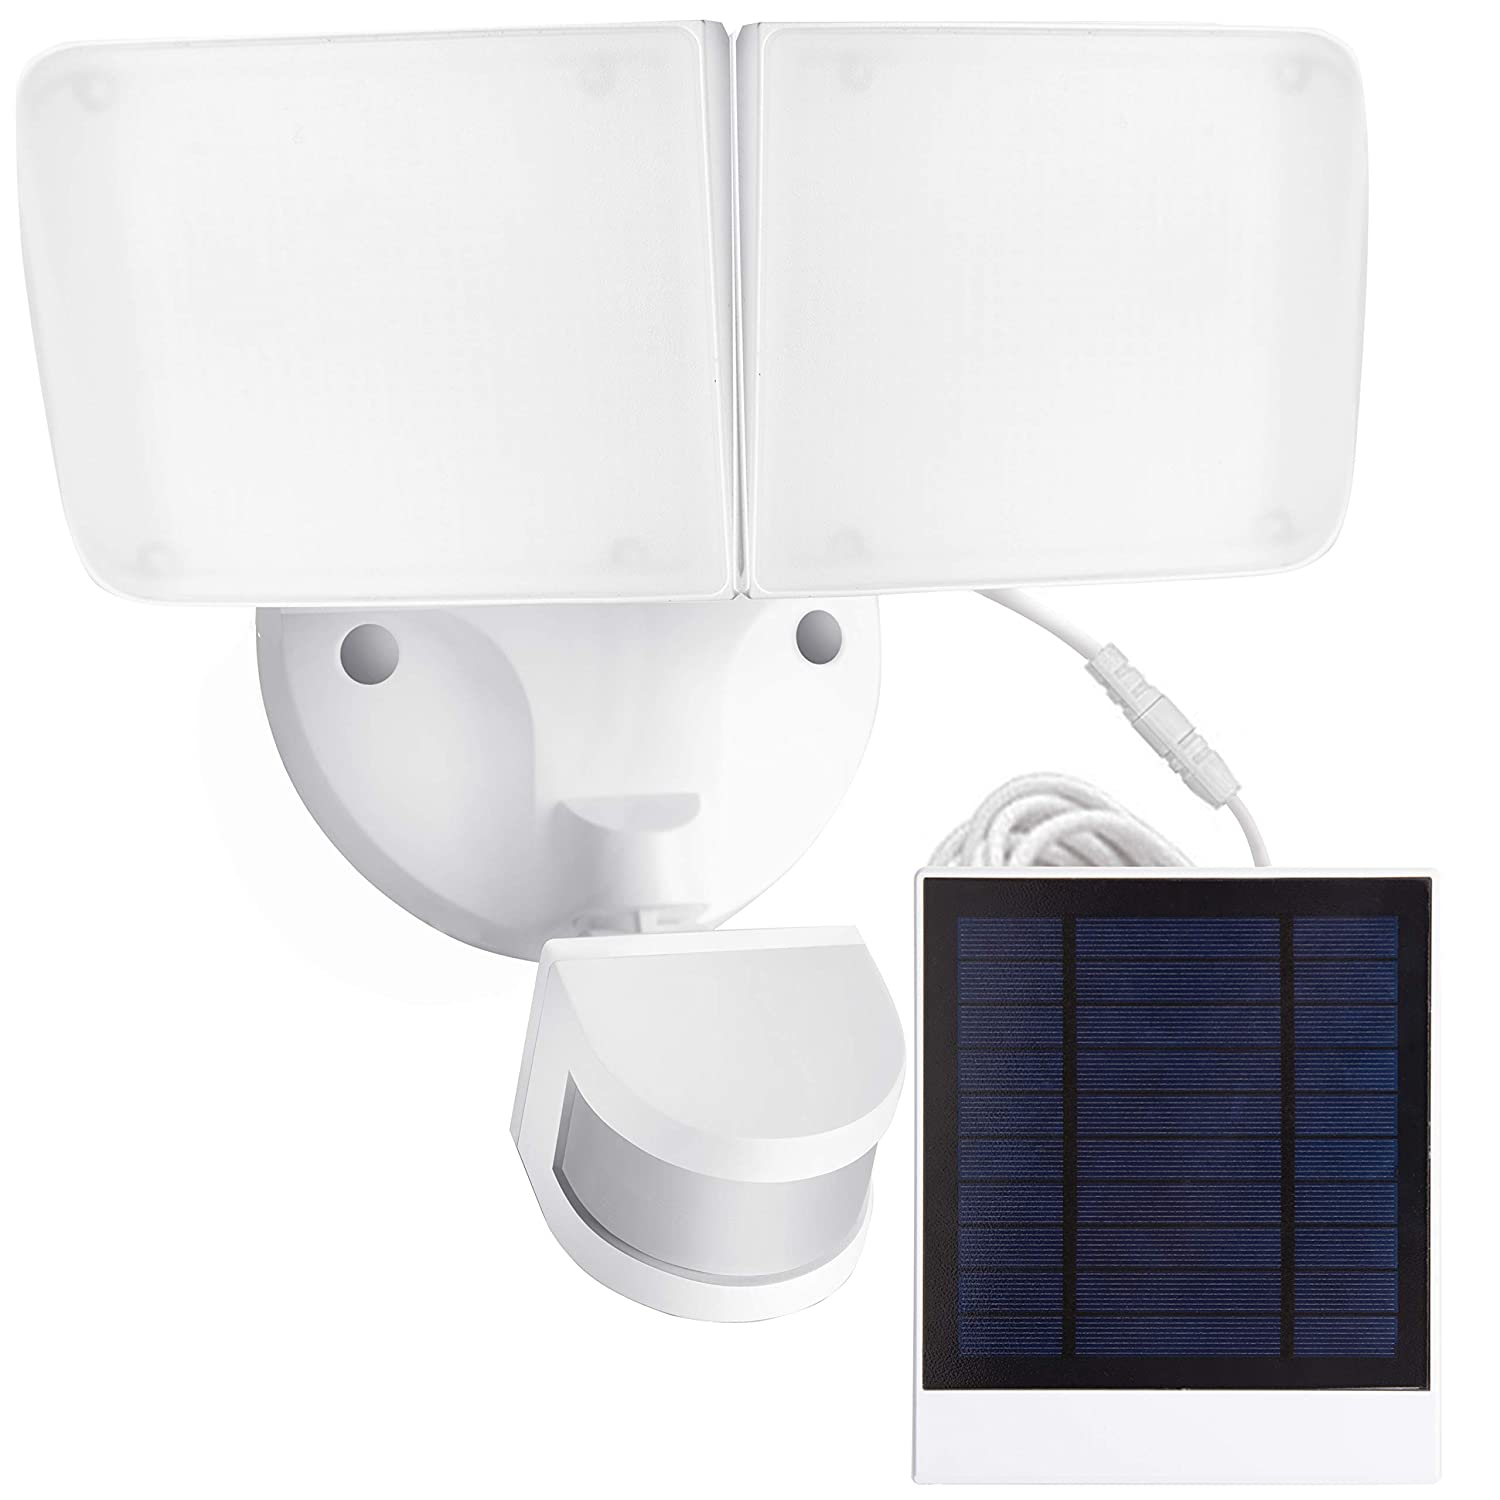 Amico Solar LED Security Light, Outdoor Motion Sensor Light, 5500K, 1000LM, IP65 Waterproof, Adjustable Head Flood Light with 2 Modes Automatic and Permanent on, for Entryways, Patio, Yard